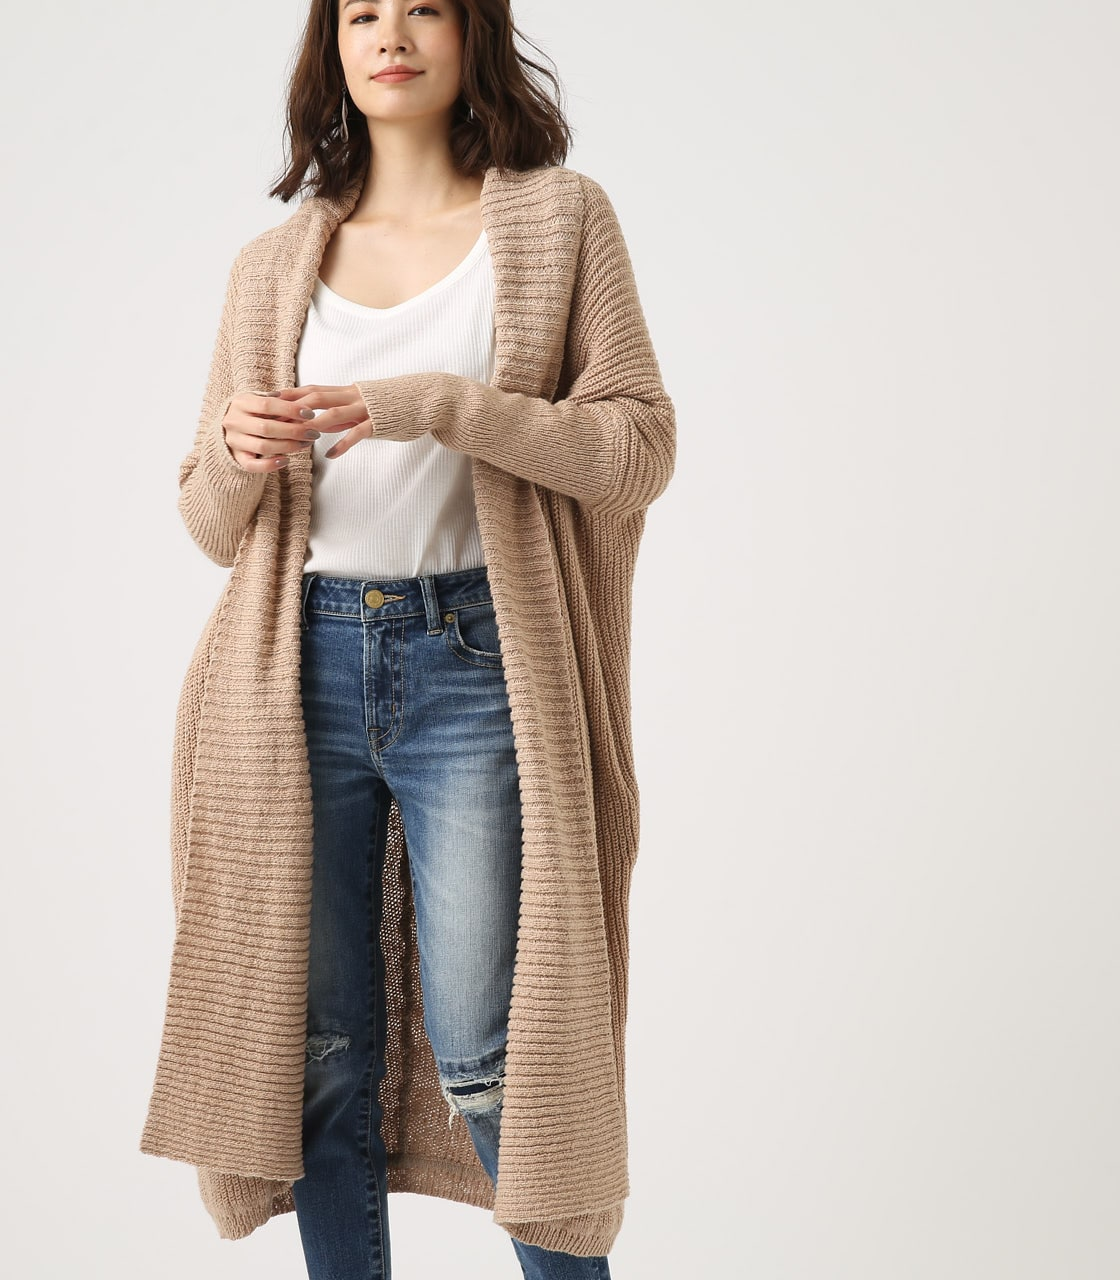 BIG SHAWL TOPPER CARDIGAN 詳細画像 BEG 1